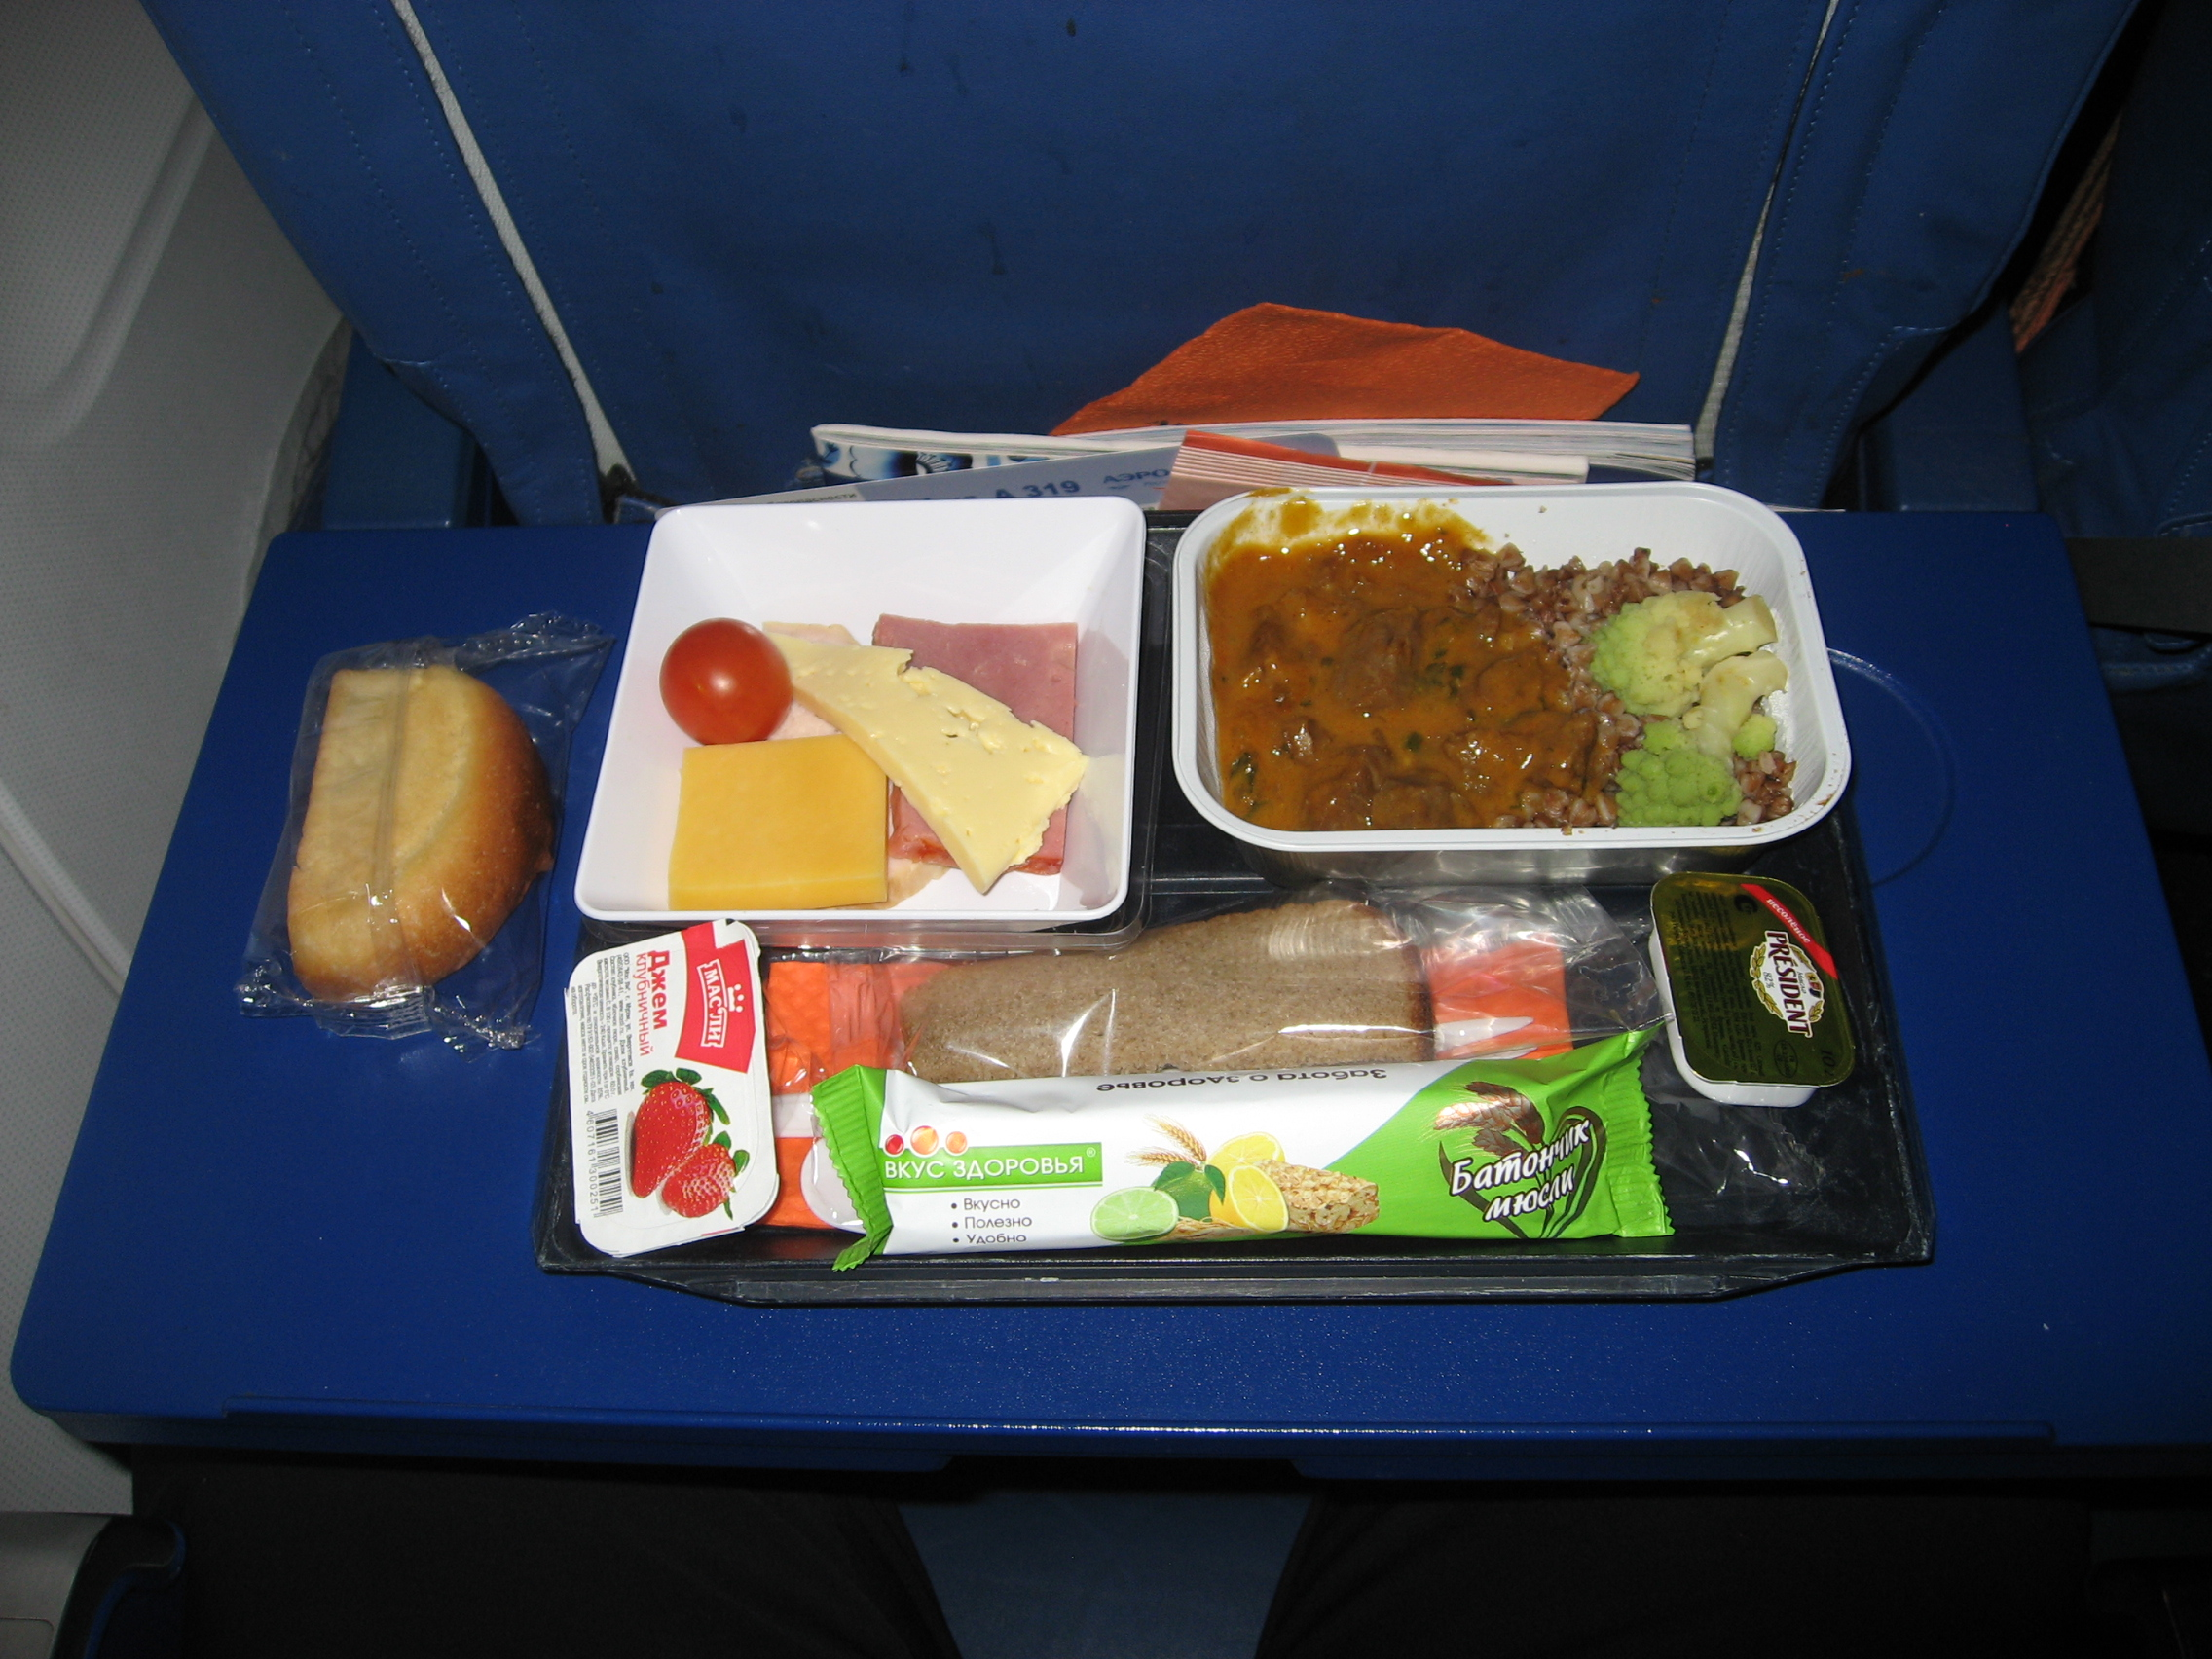 The catering meal on the Aeroflot flight Moscow-Surgut